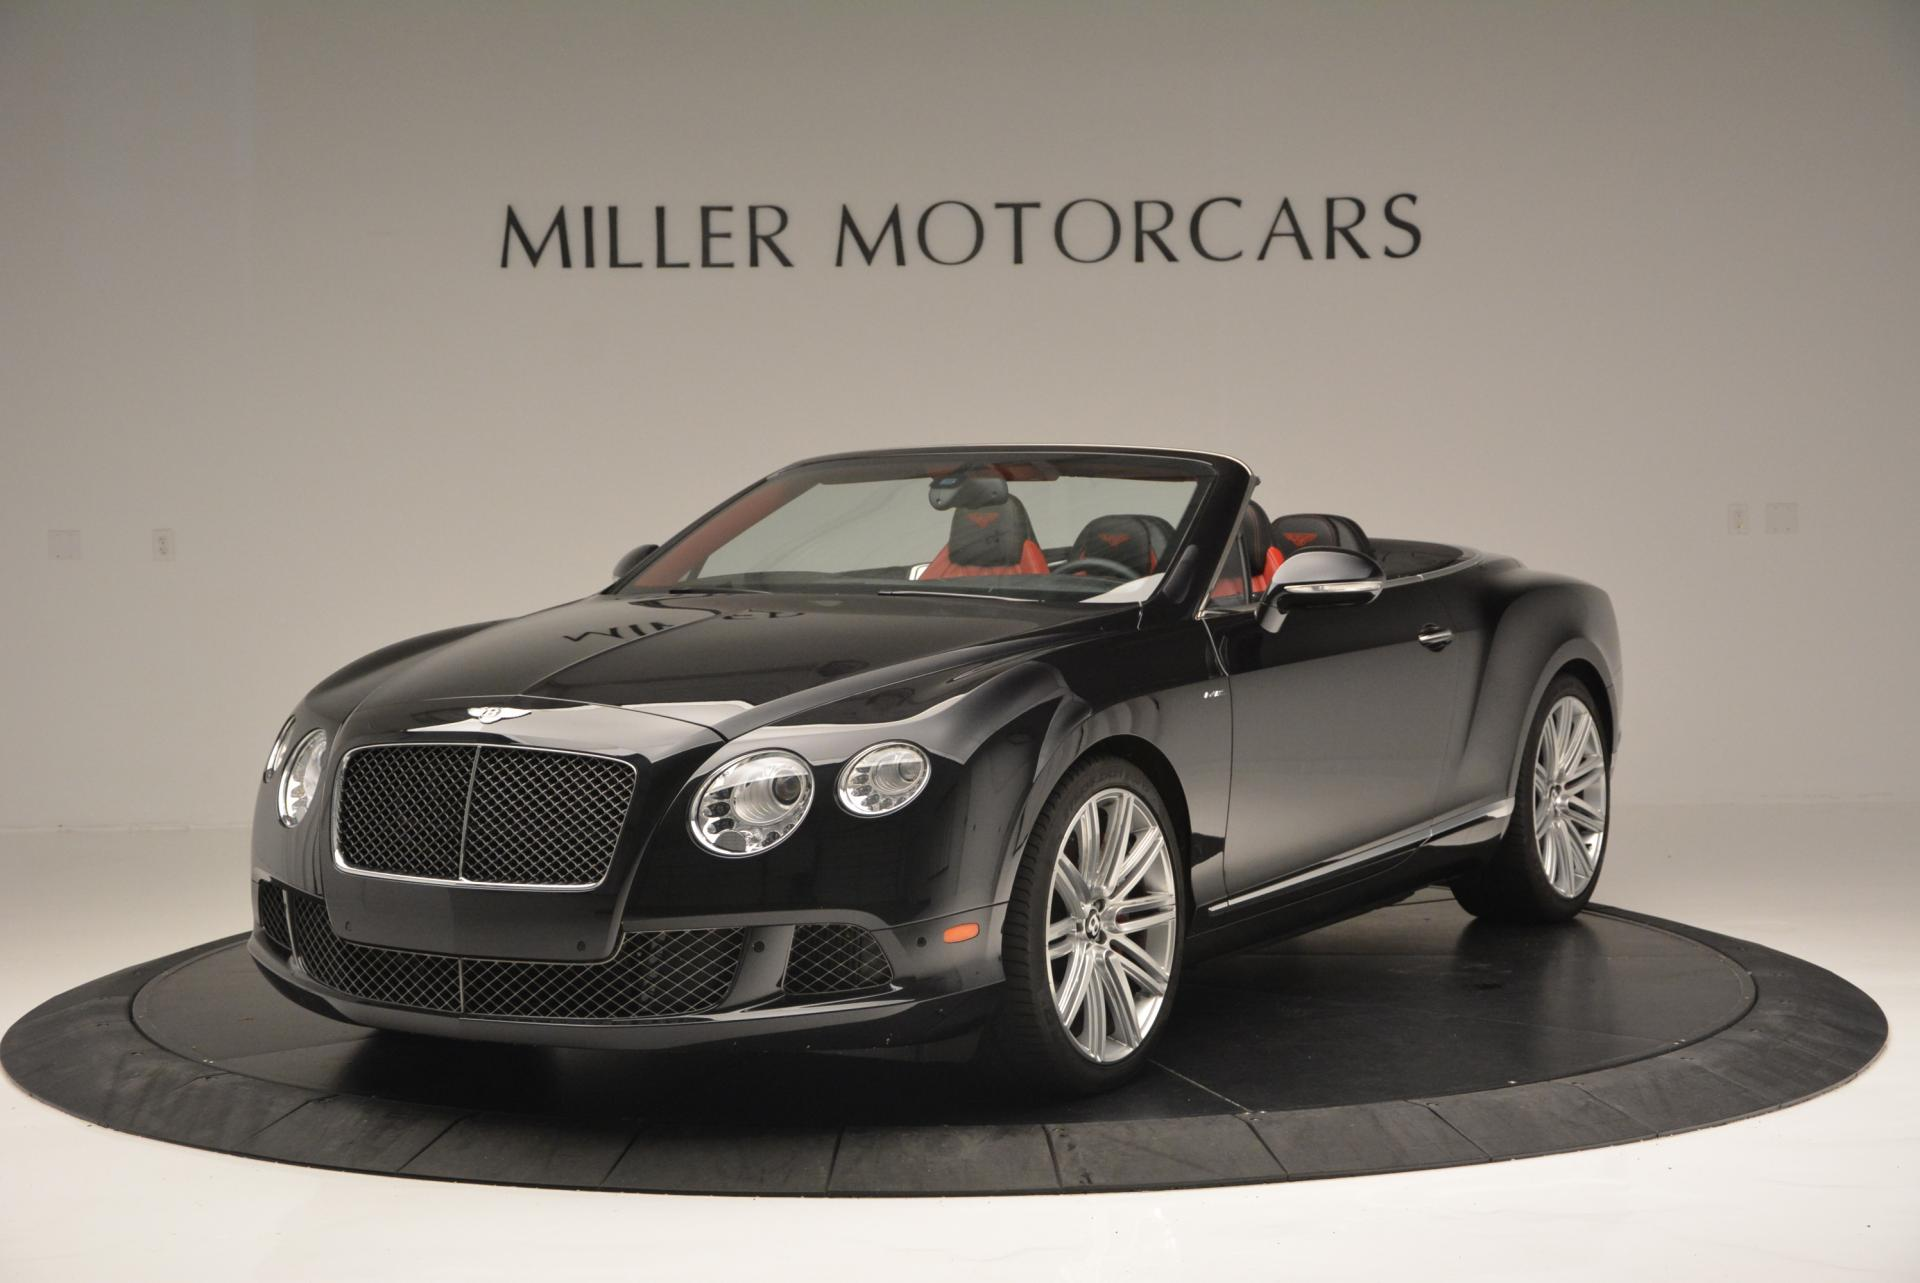 Used 2014 Bentley Continental GT Speed Convertible for sale Sold at Bentley Greenwich in Greenwich CT 06830 1